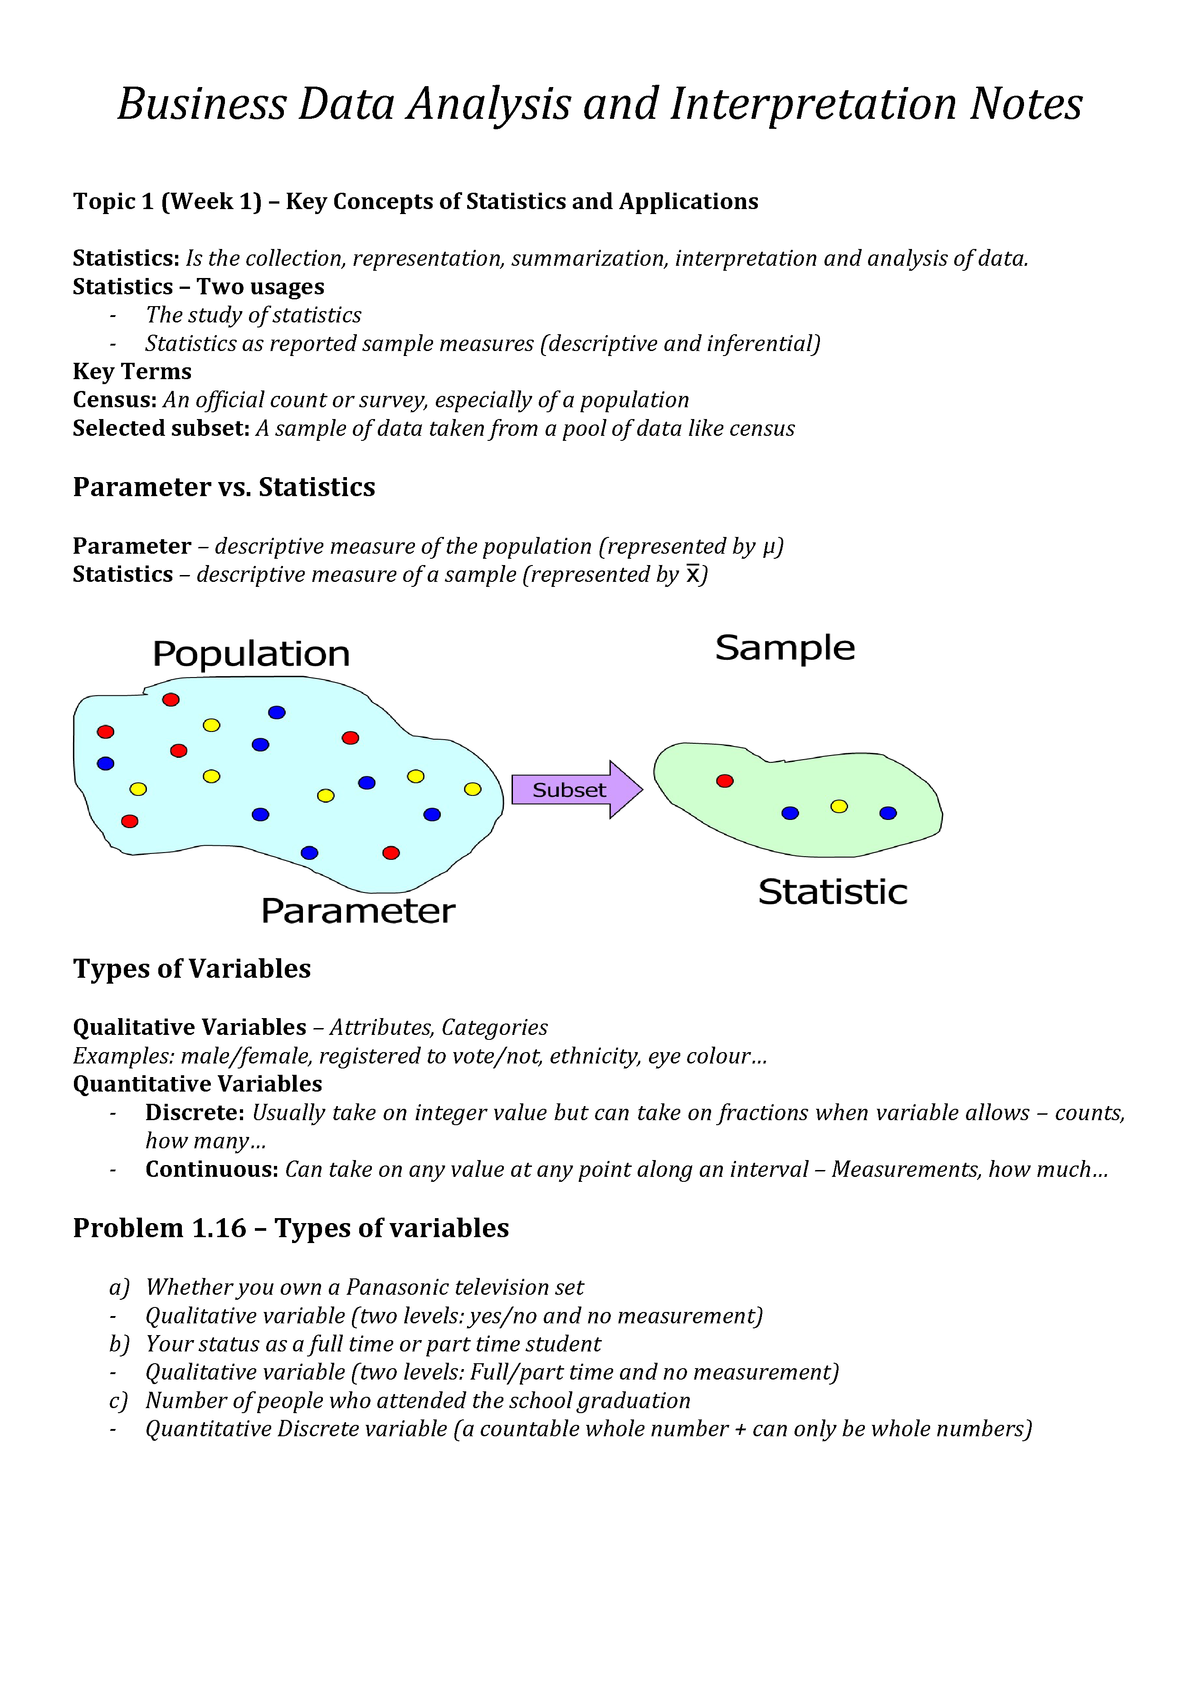 Business Data Analysis and Interpretation Notes - Lecture notes